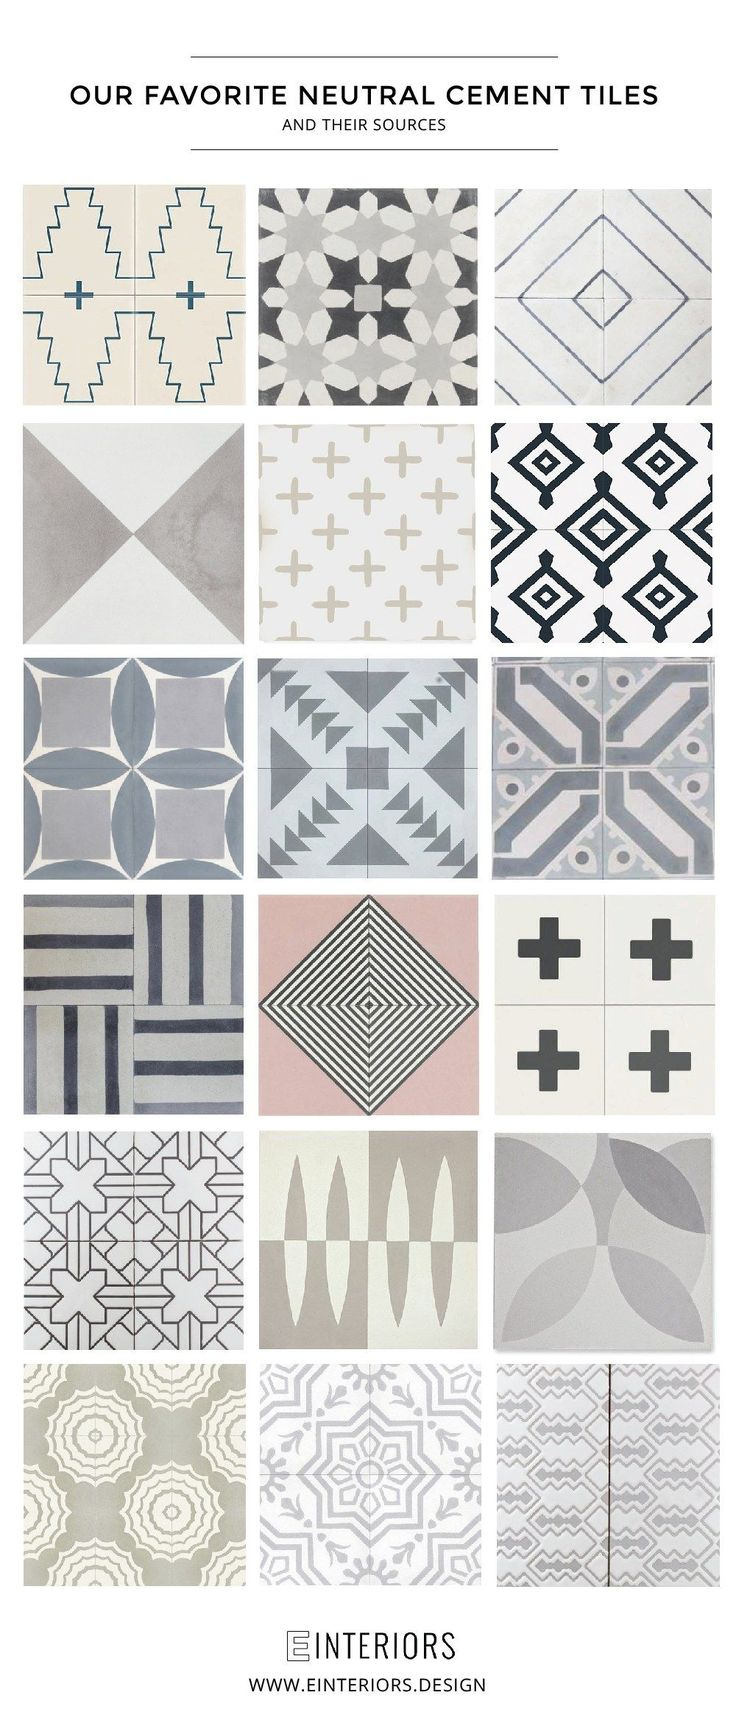 422 best tile images on pinterest | tiles, mosaic tiles and mosaics